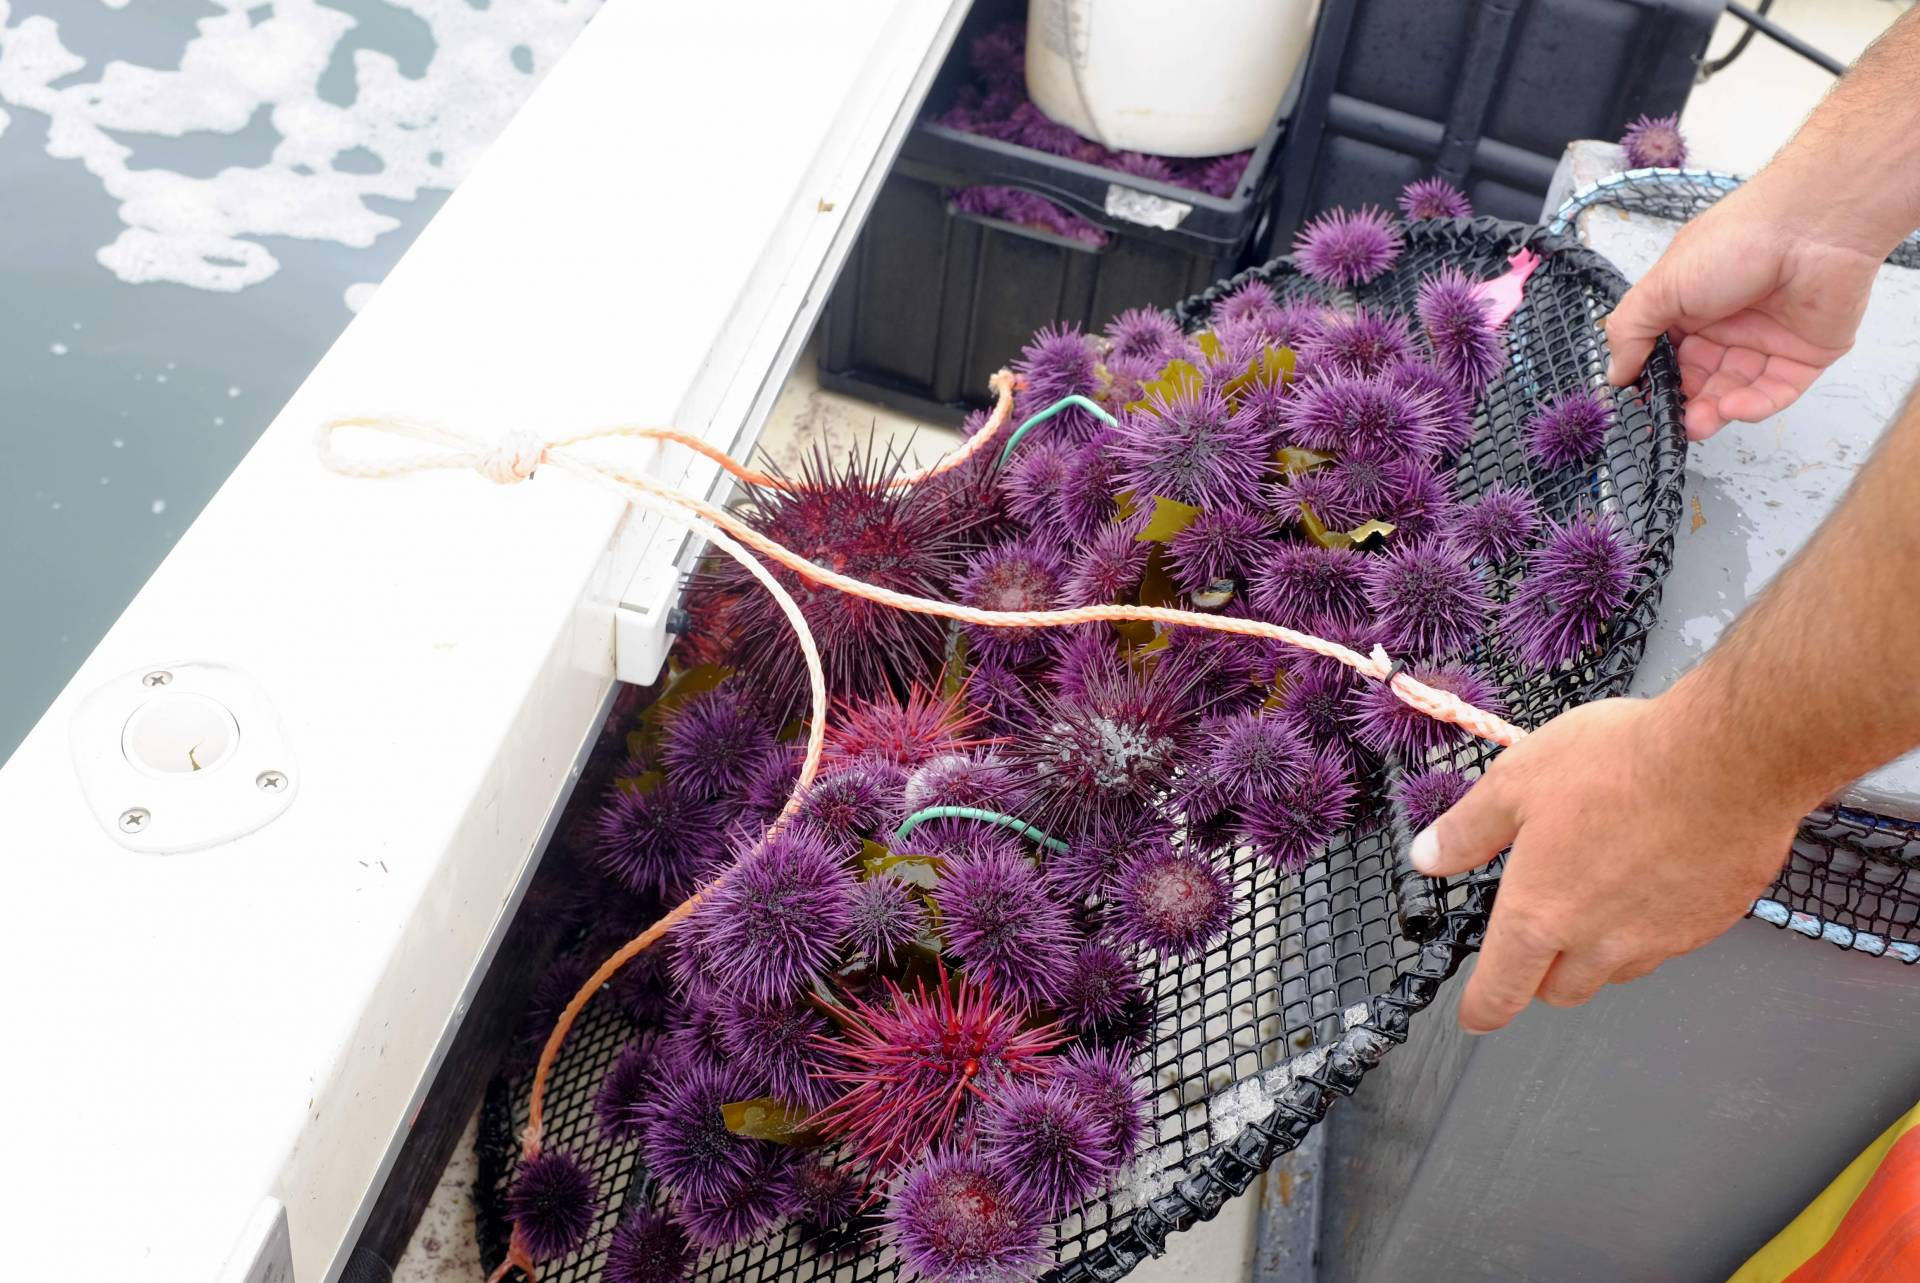 Urchin trapper Grant Downie unloads a mound of sea urchins onto his fishing boat in Mendocino County's Caspar Bay. Peter Arcuni/KQED